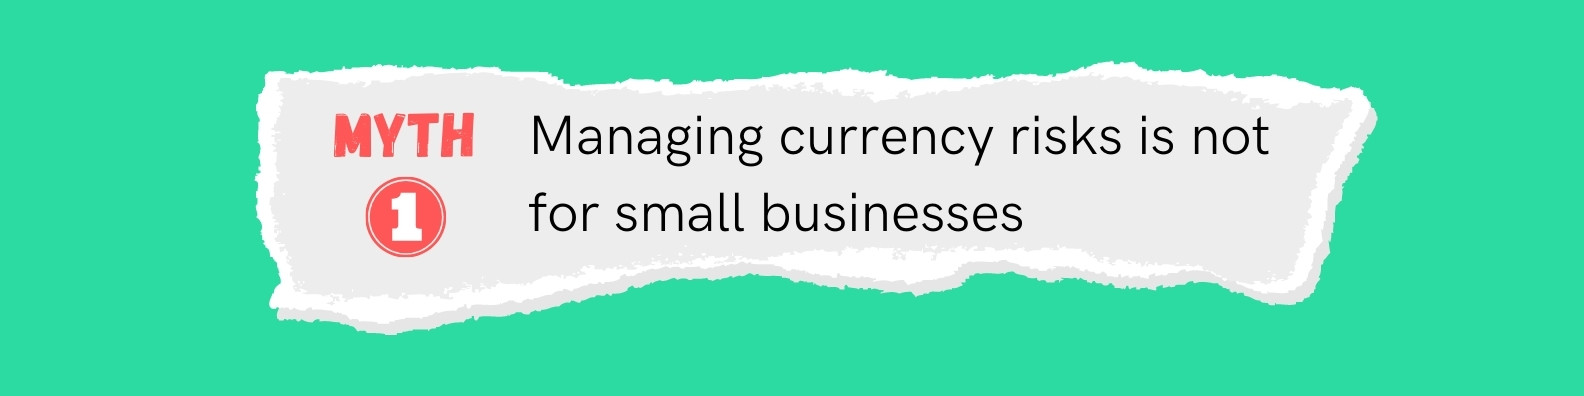 Myth: Managing currency management is not for small businesses